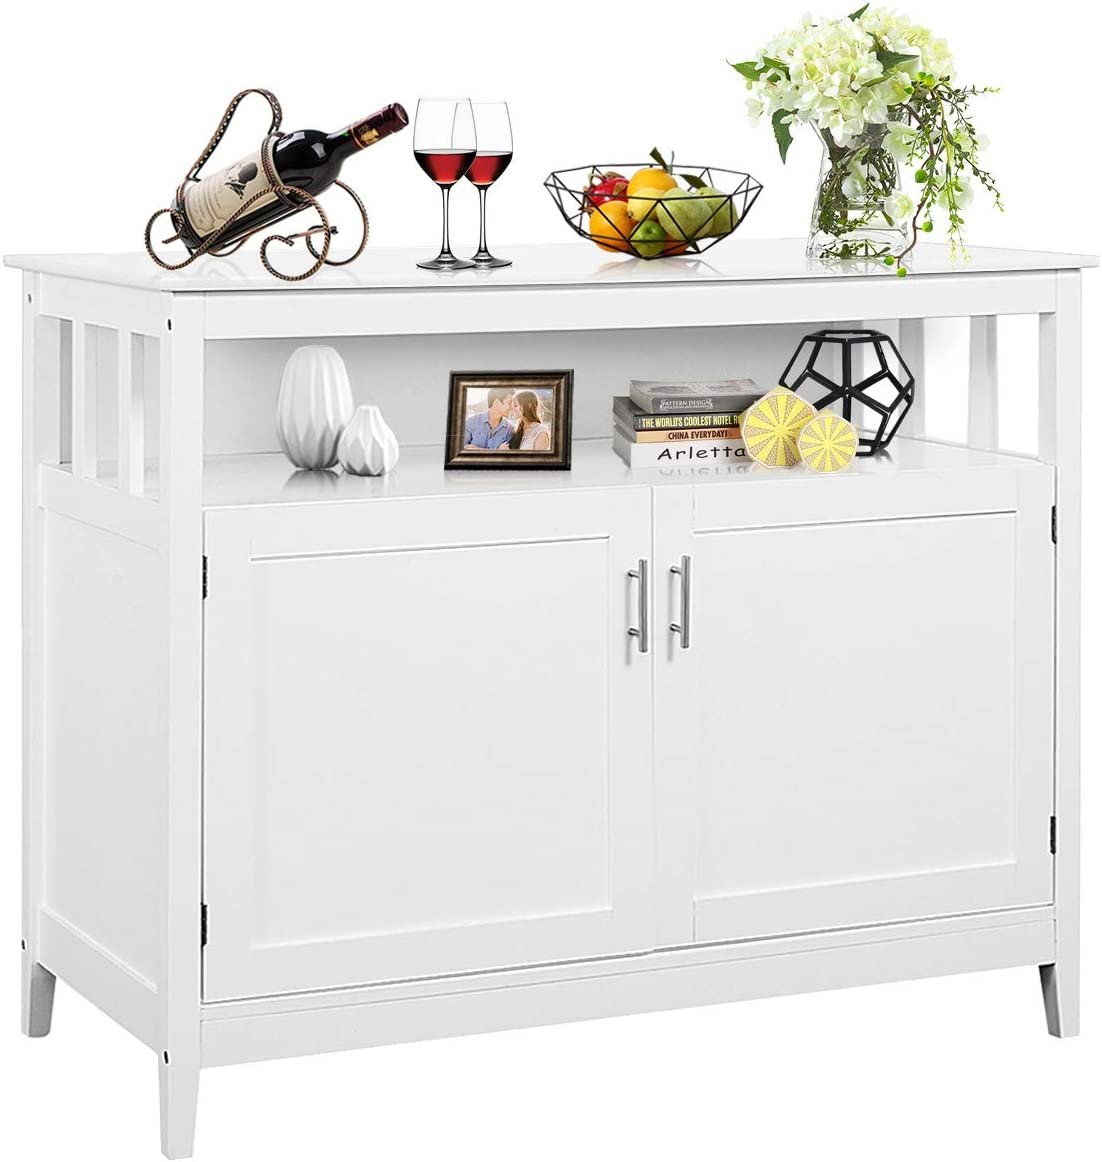 Costzon Kitchen Storage Sideboard Dining Buffet Server Cabinet Cupboard, Free Standing Storage Chest with 2 Level Cabinets and Open Shelf, Adjustable Middle Shelf for Home, Dining Room Modern White